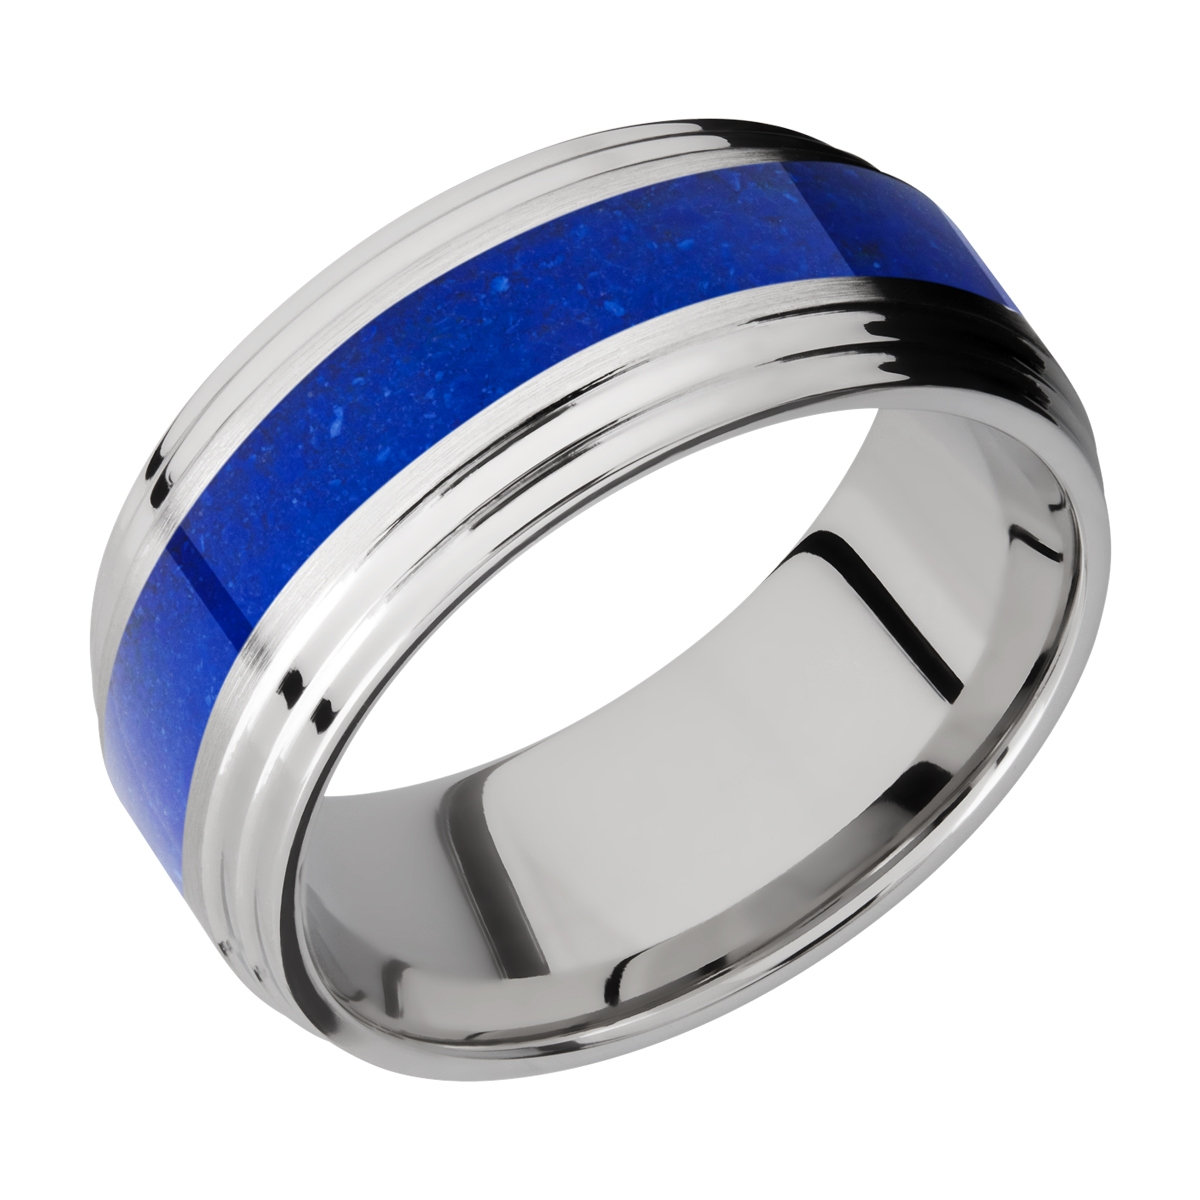 Lashbrook CC9F2S14/MOSAIC Cobalt Chrome Wedding Ring or Band